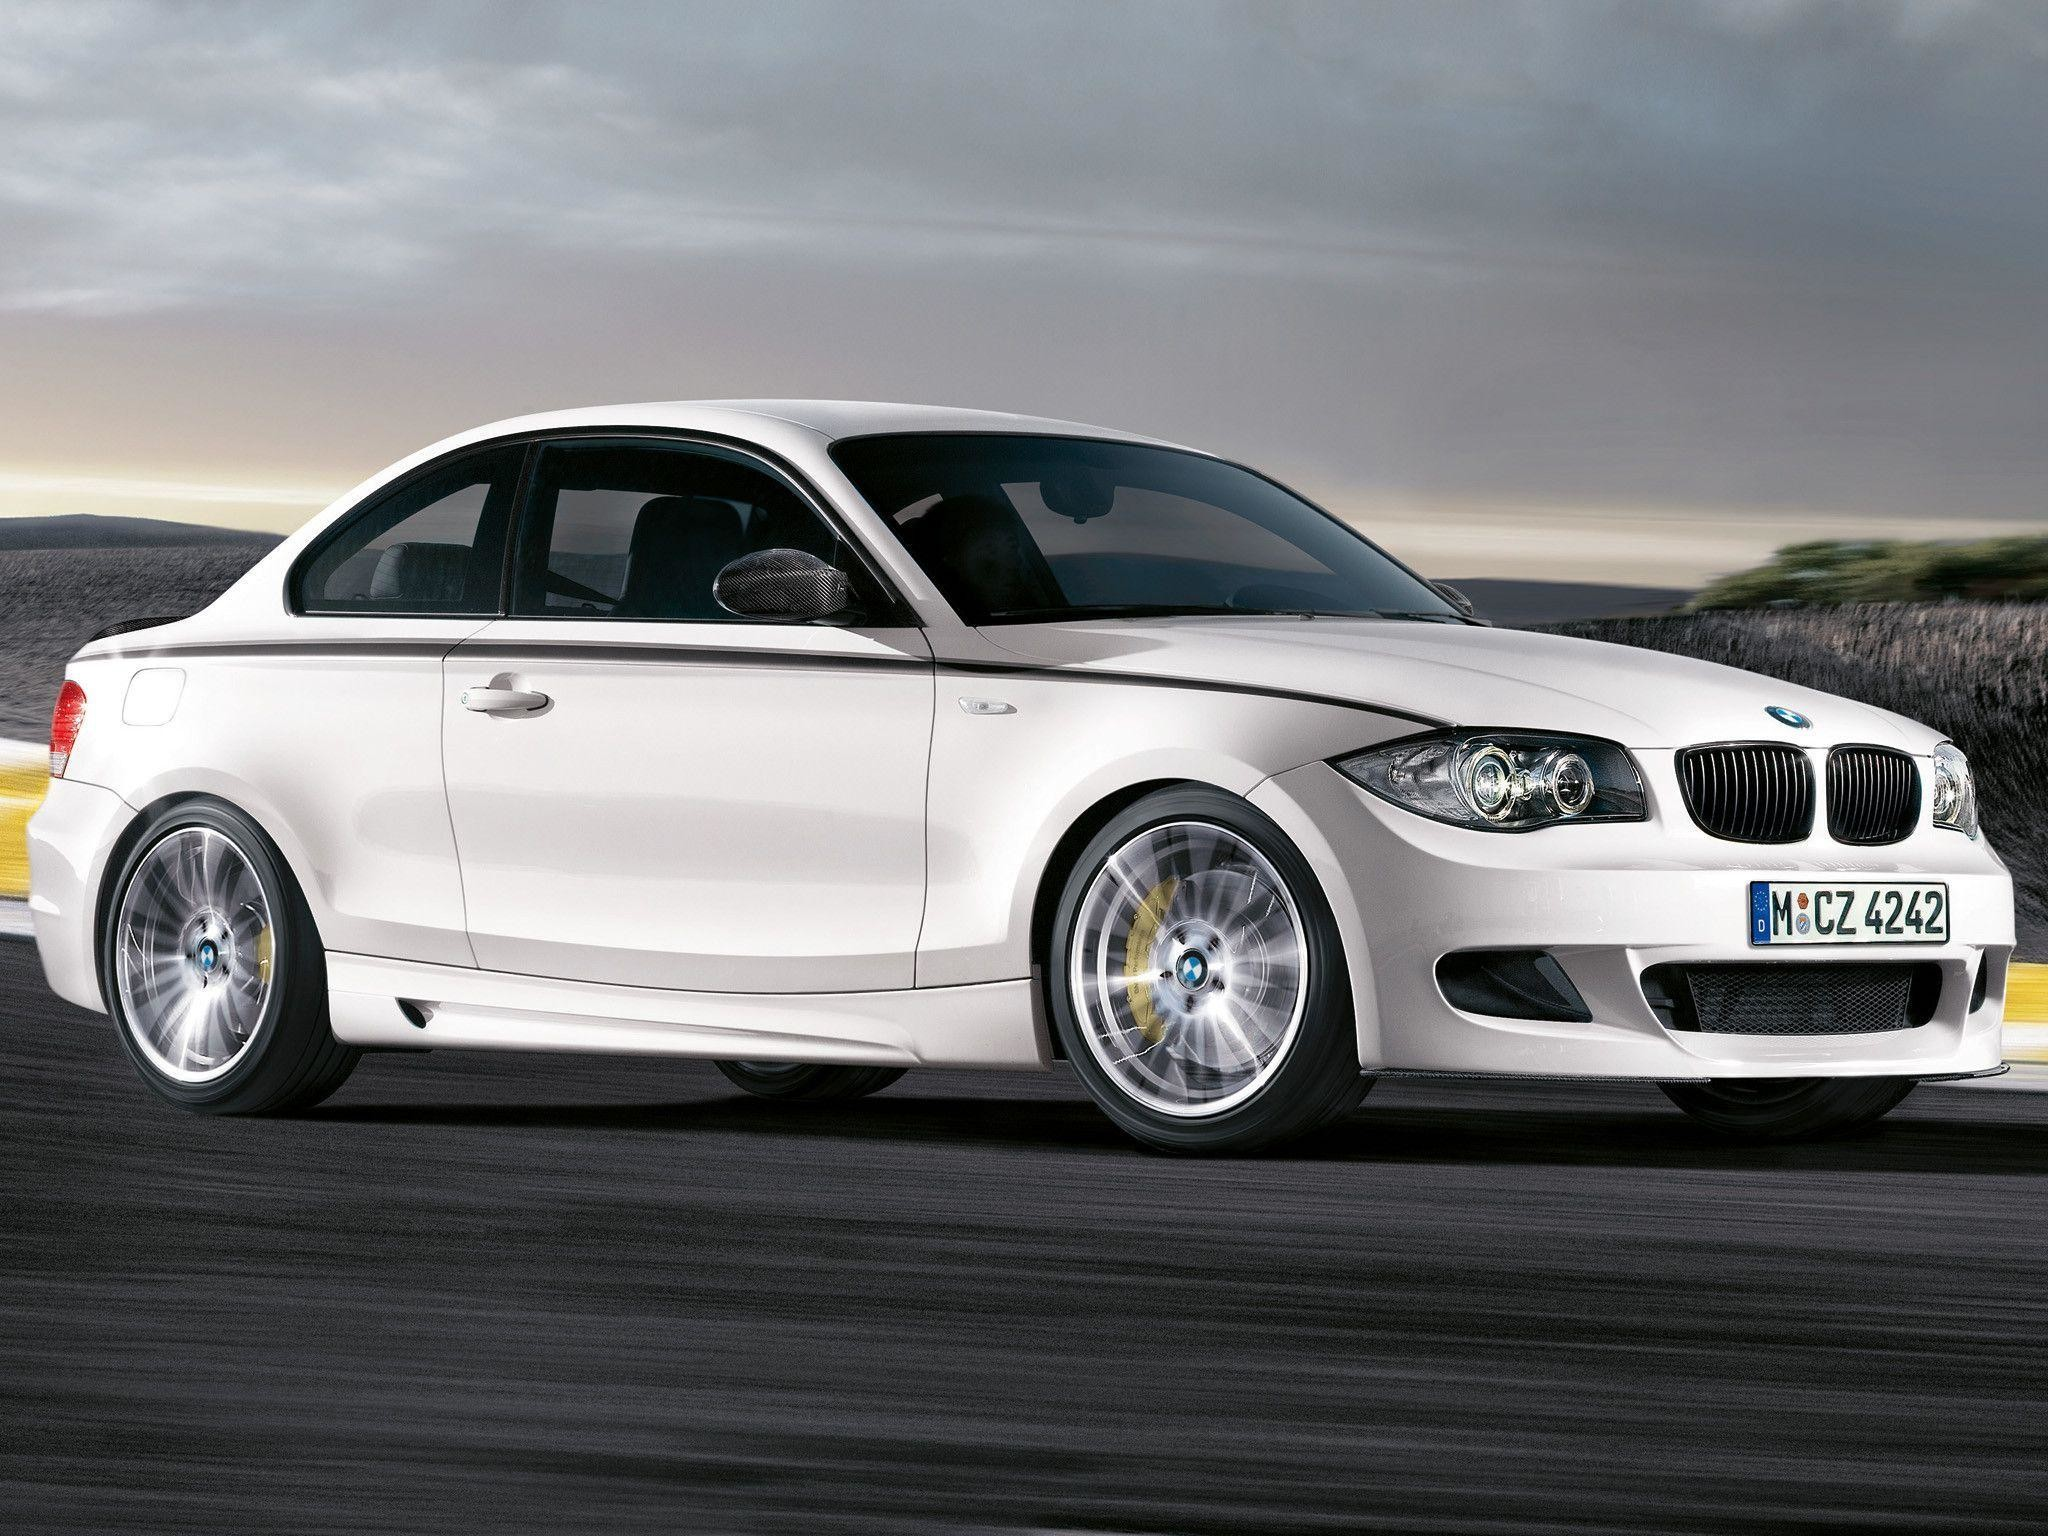 Res: 2048x1536, BMW 1 Series E81-E88 | Car wallpapers HD